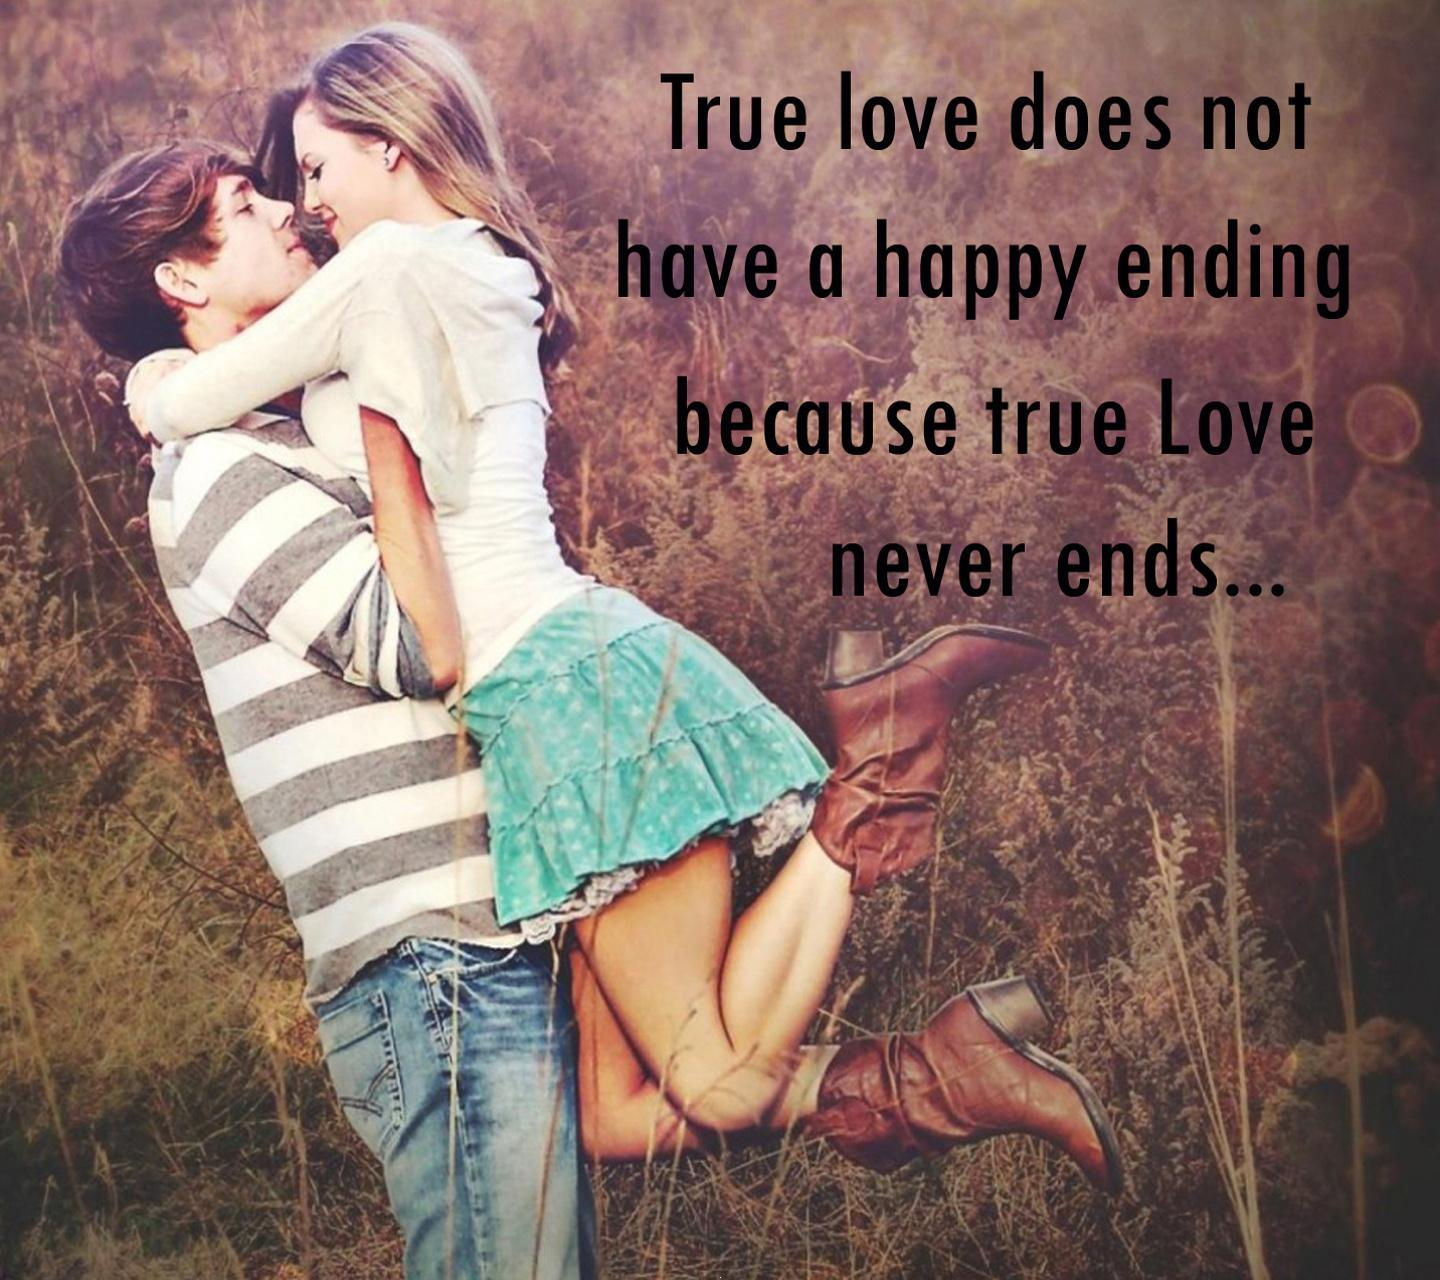 Heart Touching Quote Wallpapers Mobile Download True Love Hd Wallpaper For Laptop And Mobile